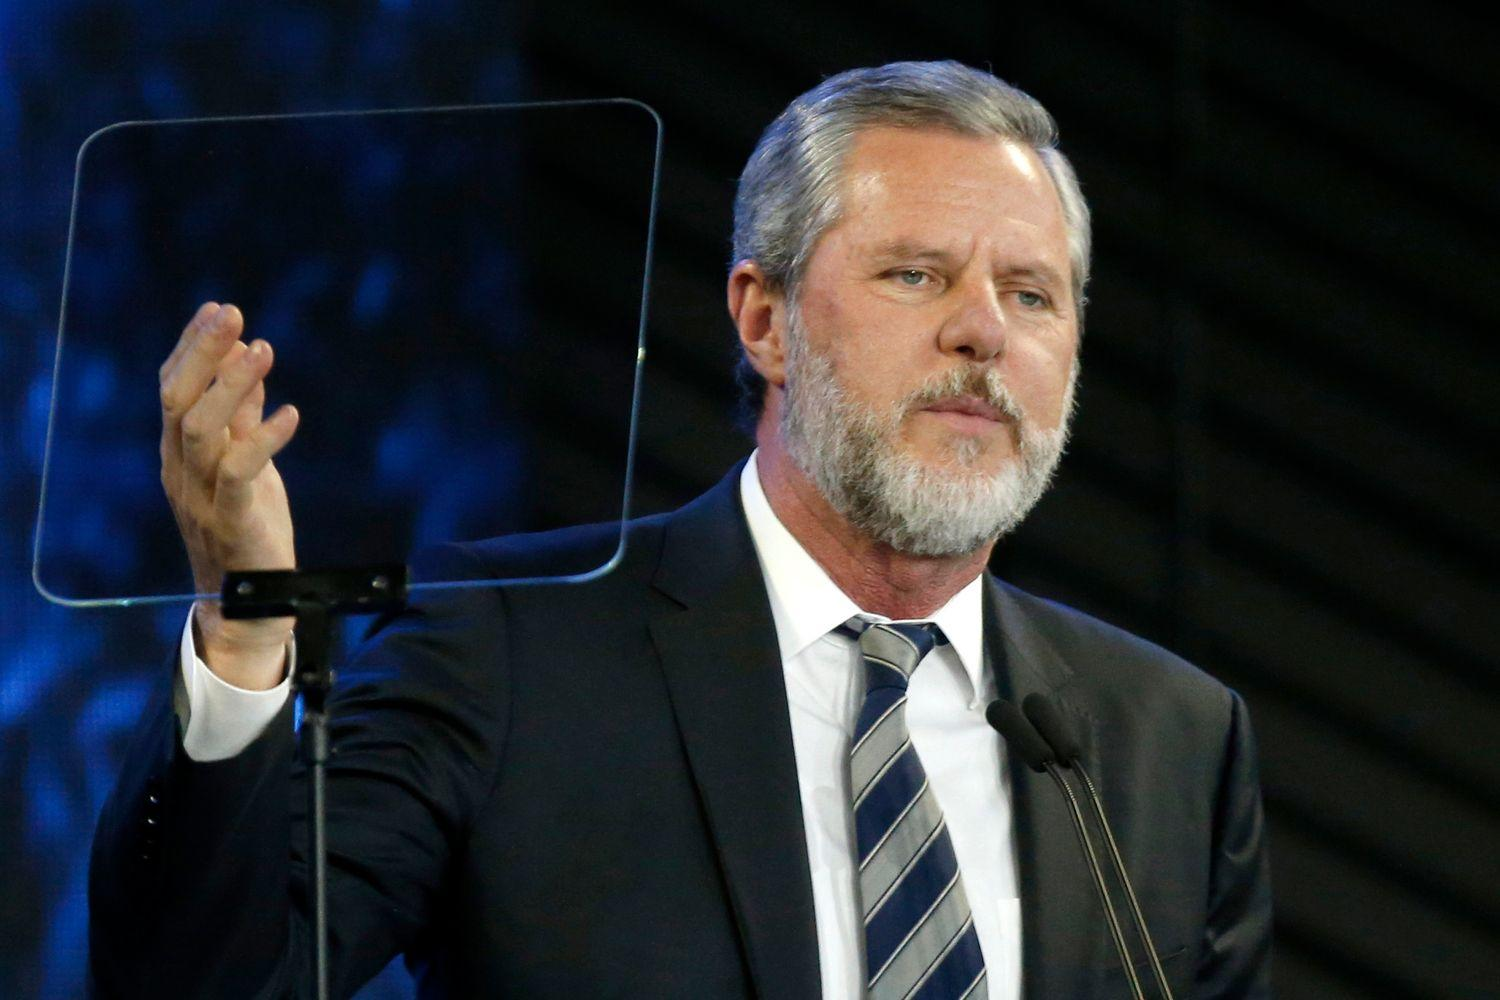 Top GOP lawmaker calls on Falwell to resign as Liberty University president